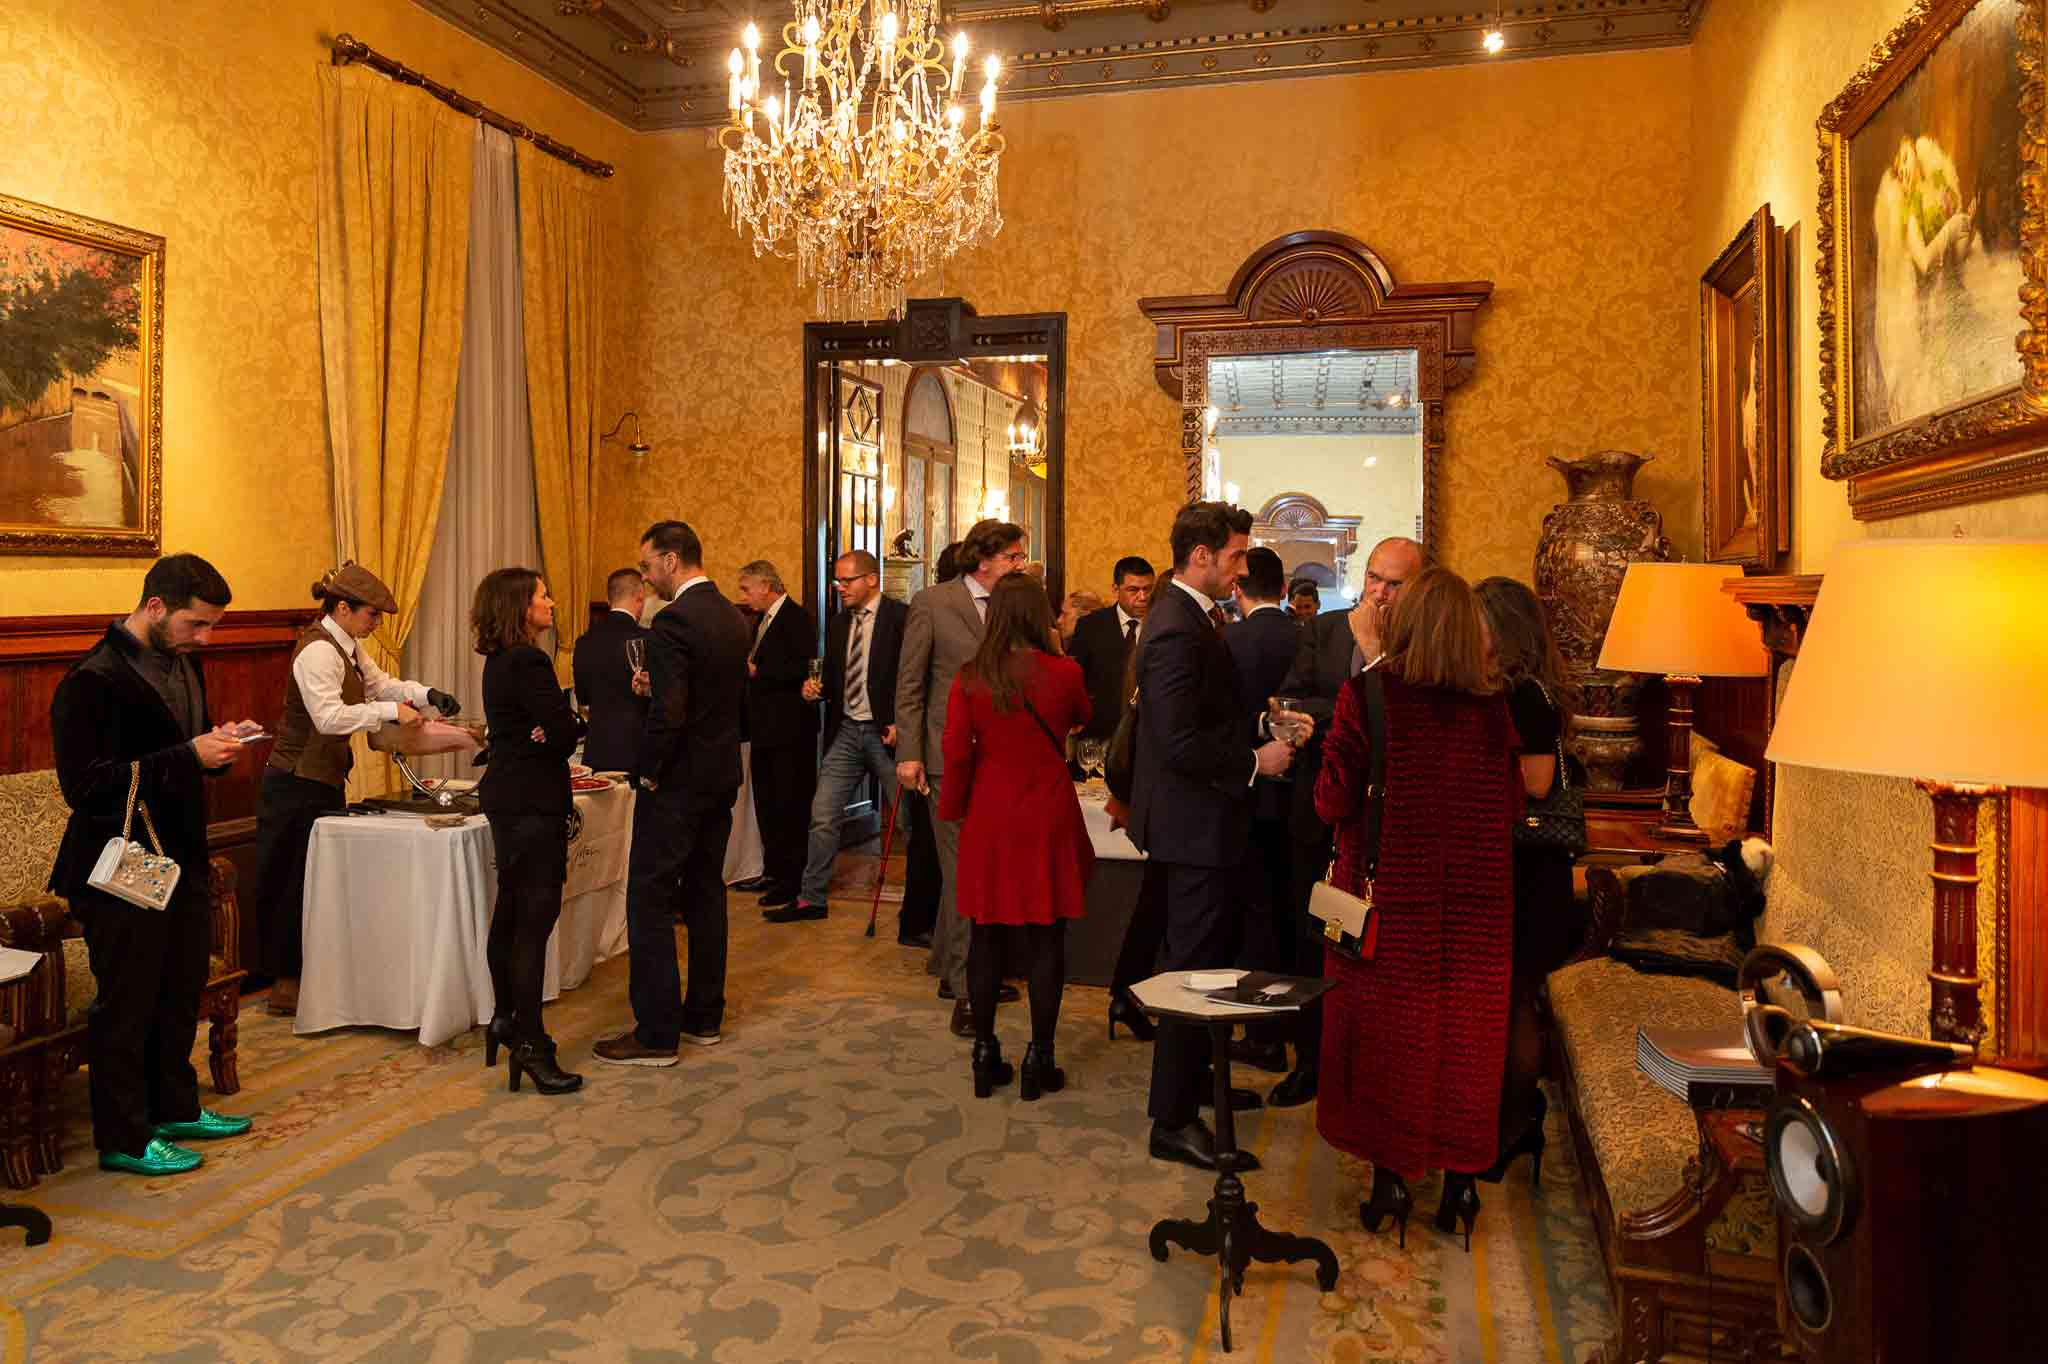 Circulo del Liceo event for luxury brands in Spain